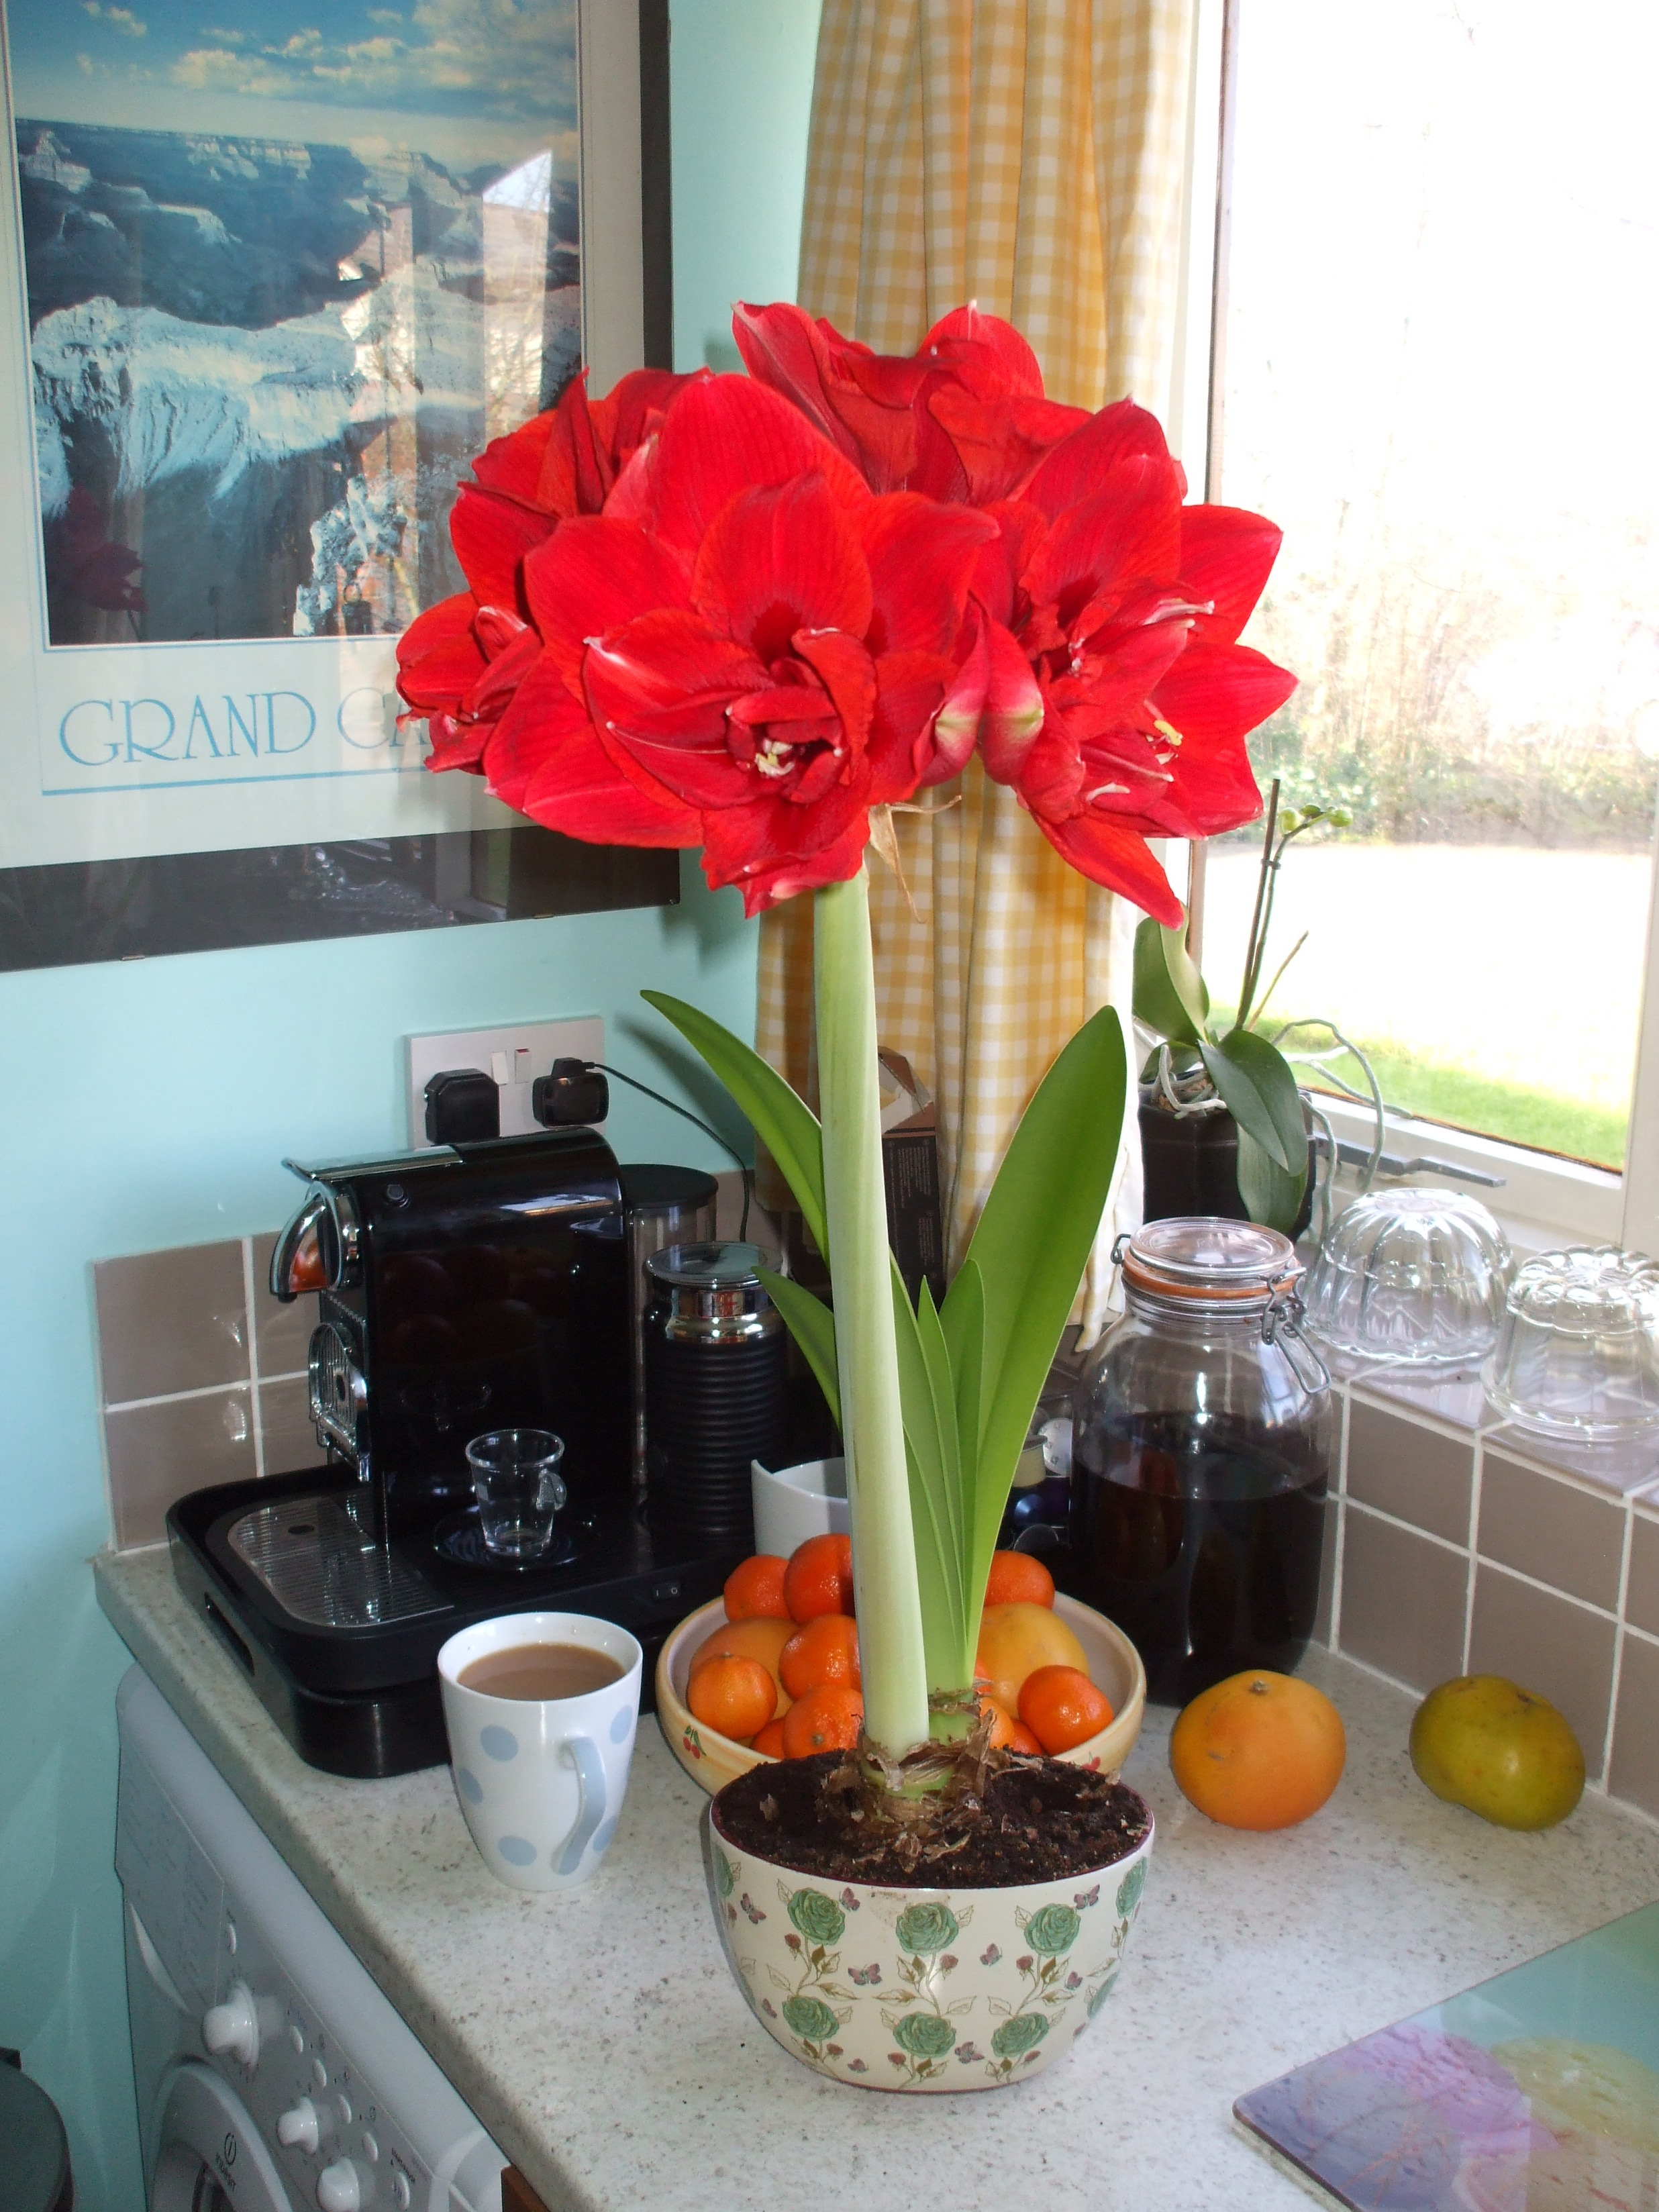 Grandmas amaryllis ghostly toms travel blog there was a big bud that began to open on the day of grandmas funeral and now a week later it is fully open its spectacular izmirmasajfo